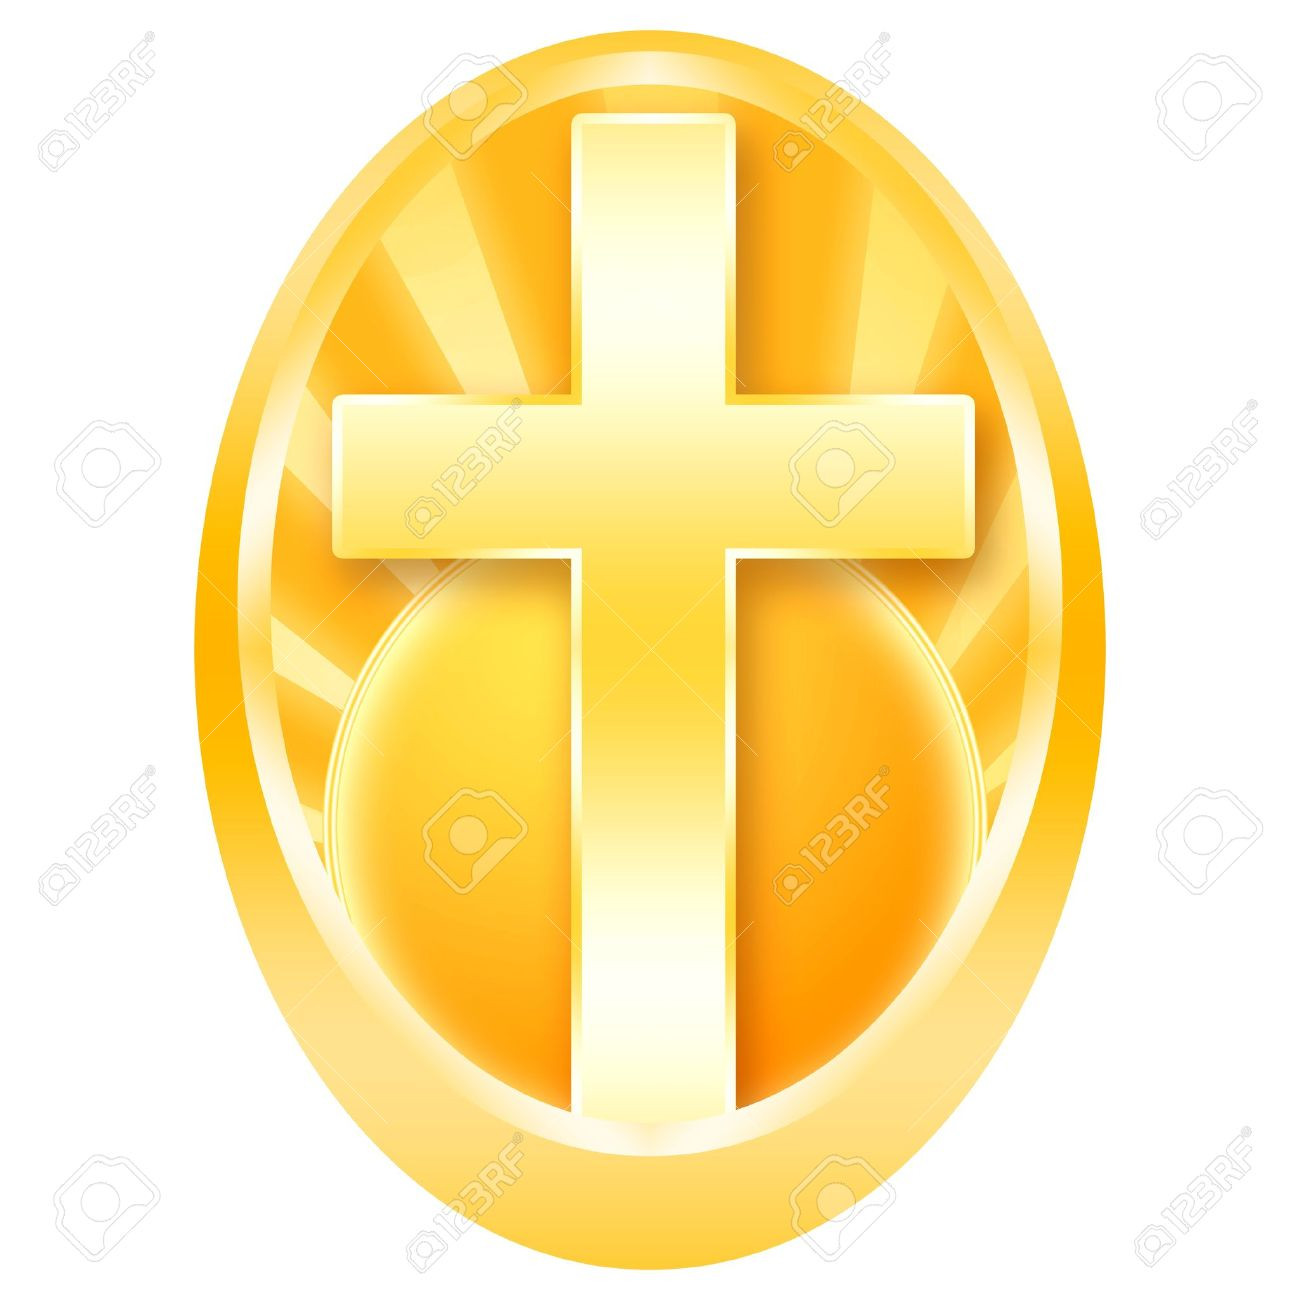 Easter egg cross clipart banner stock Easter Egg Decorated With Golden Cross In The Rays Of The Sun ... banner stock